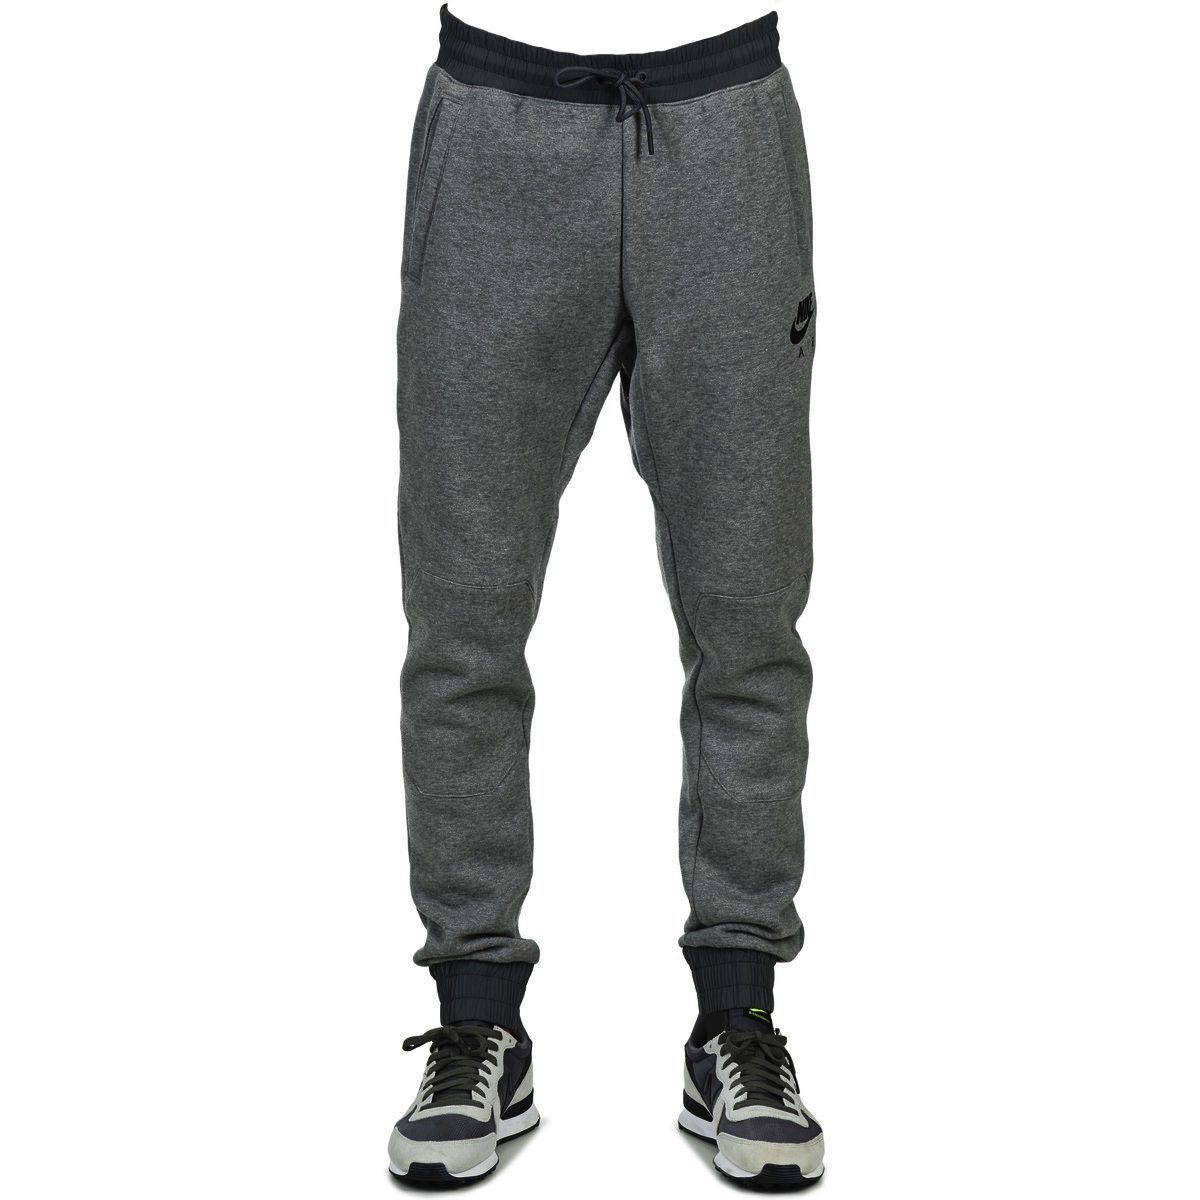 Nike AIR HYBRID JOGGER MEN'S PANT 805158-091 'CARBON HEATHER/BLACK' size